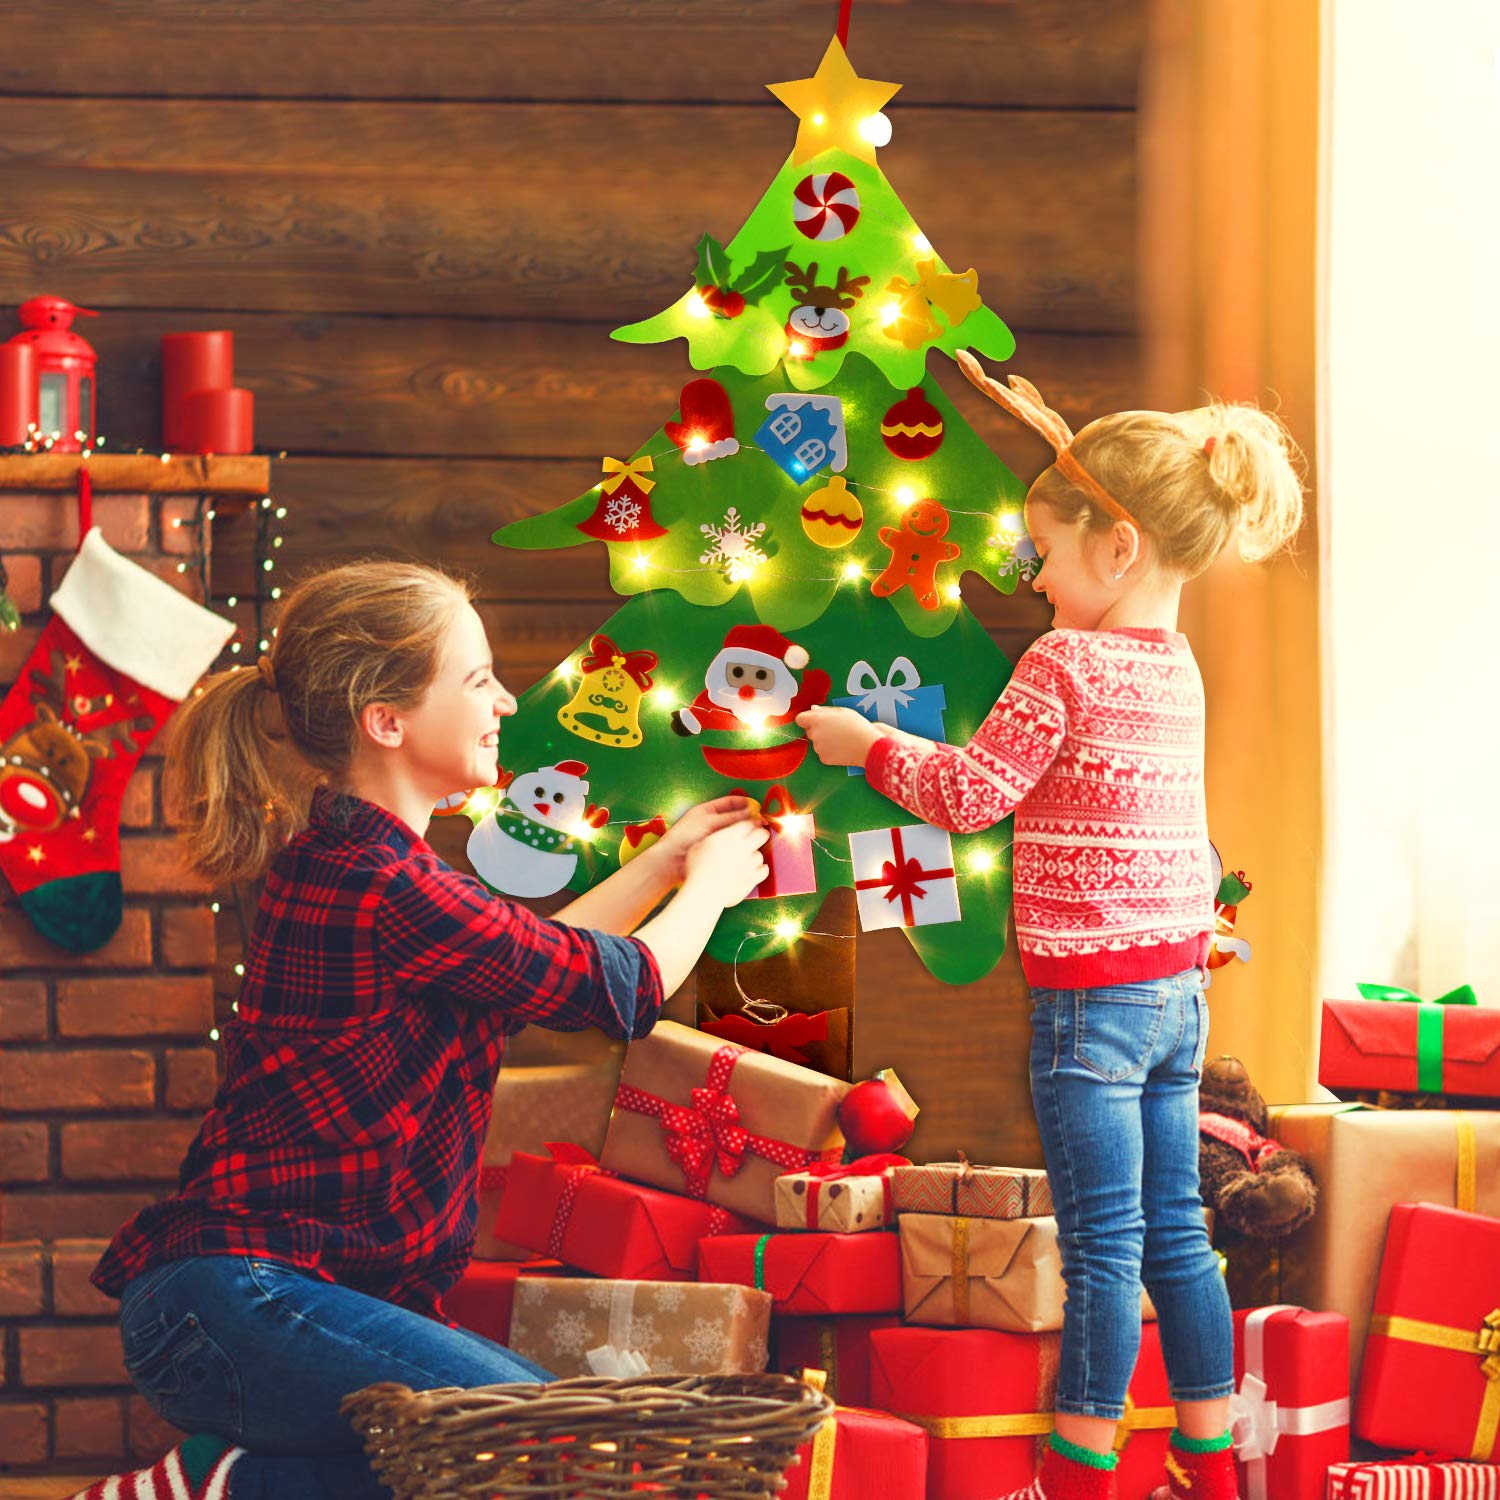 Great kids Christmas Tree/Christmas tree alternative!